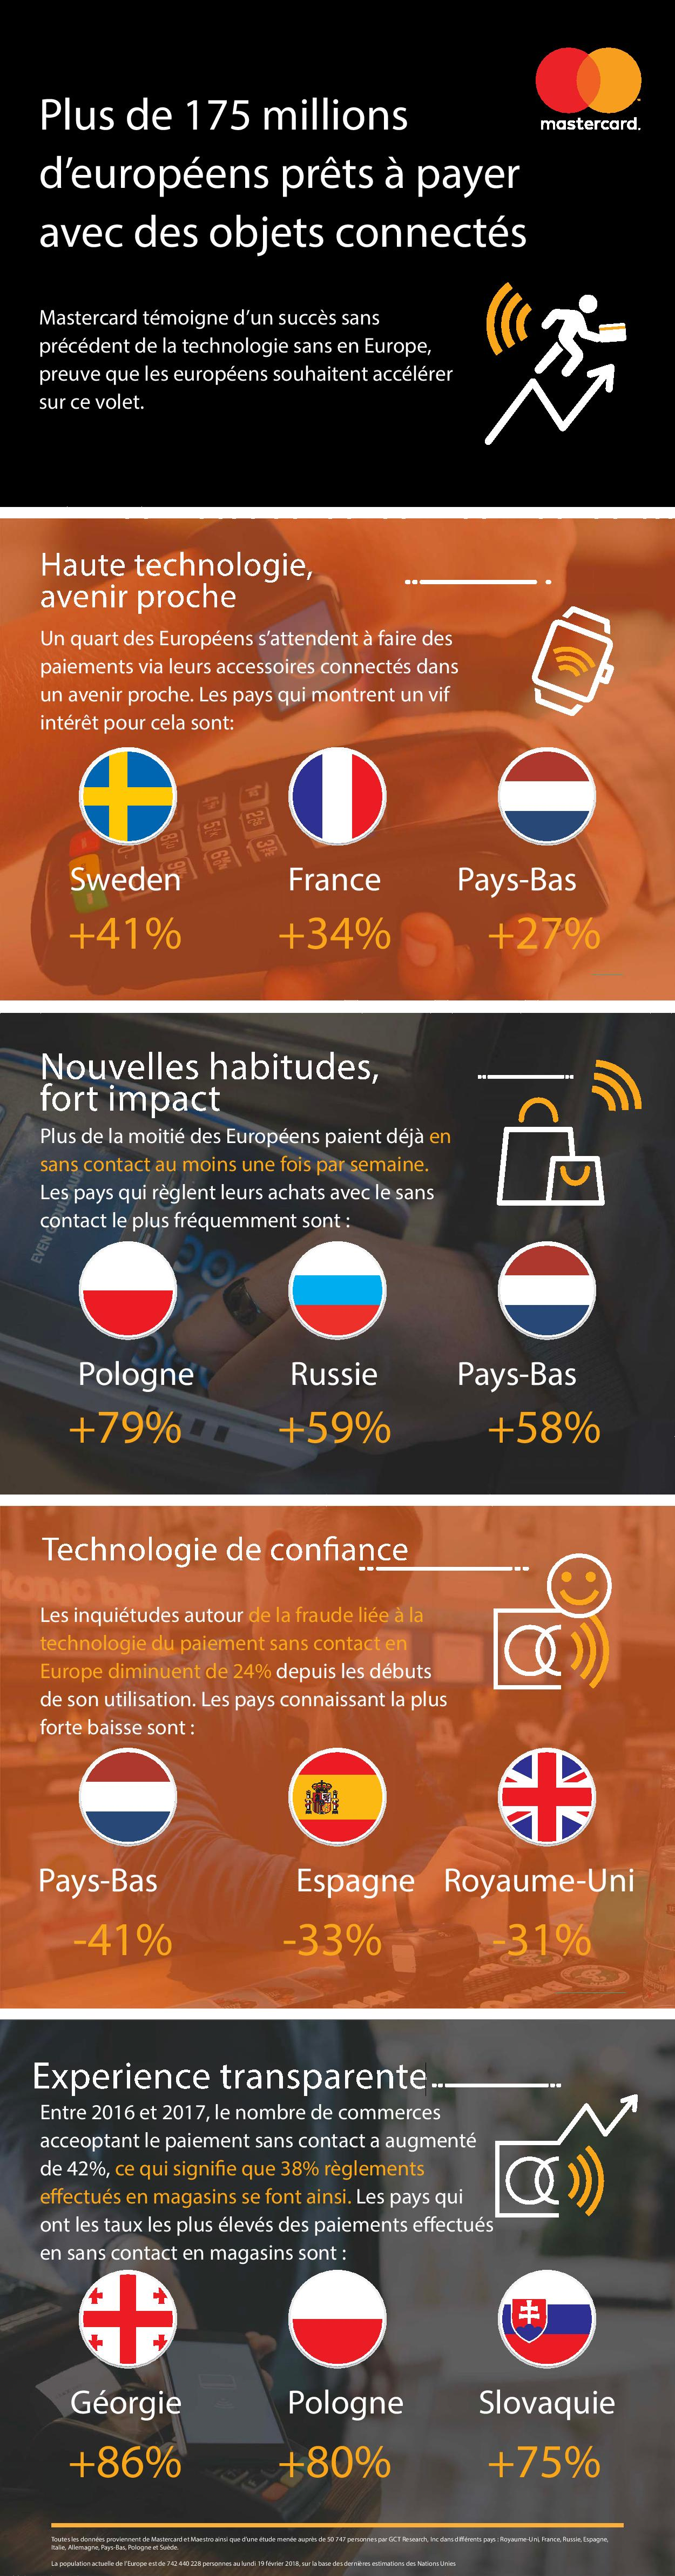 Mobile_World_Congress_Infographic_Wearables-page-001